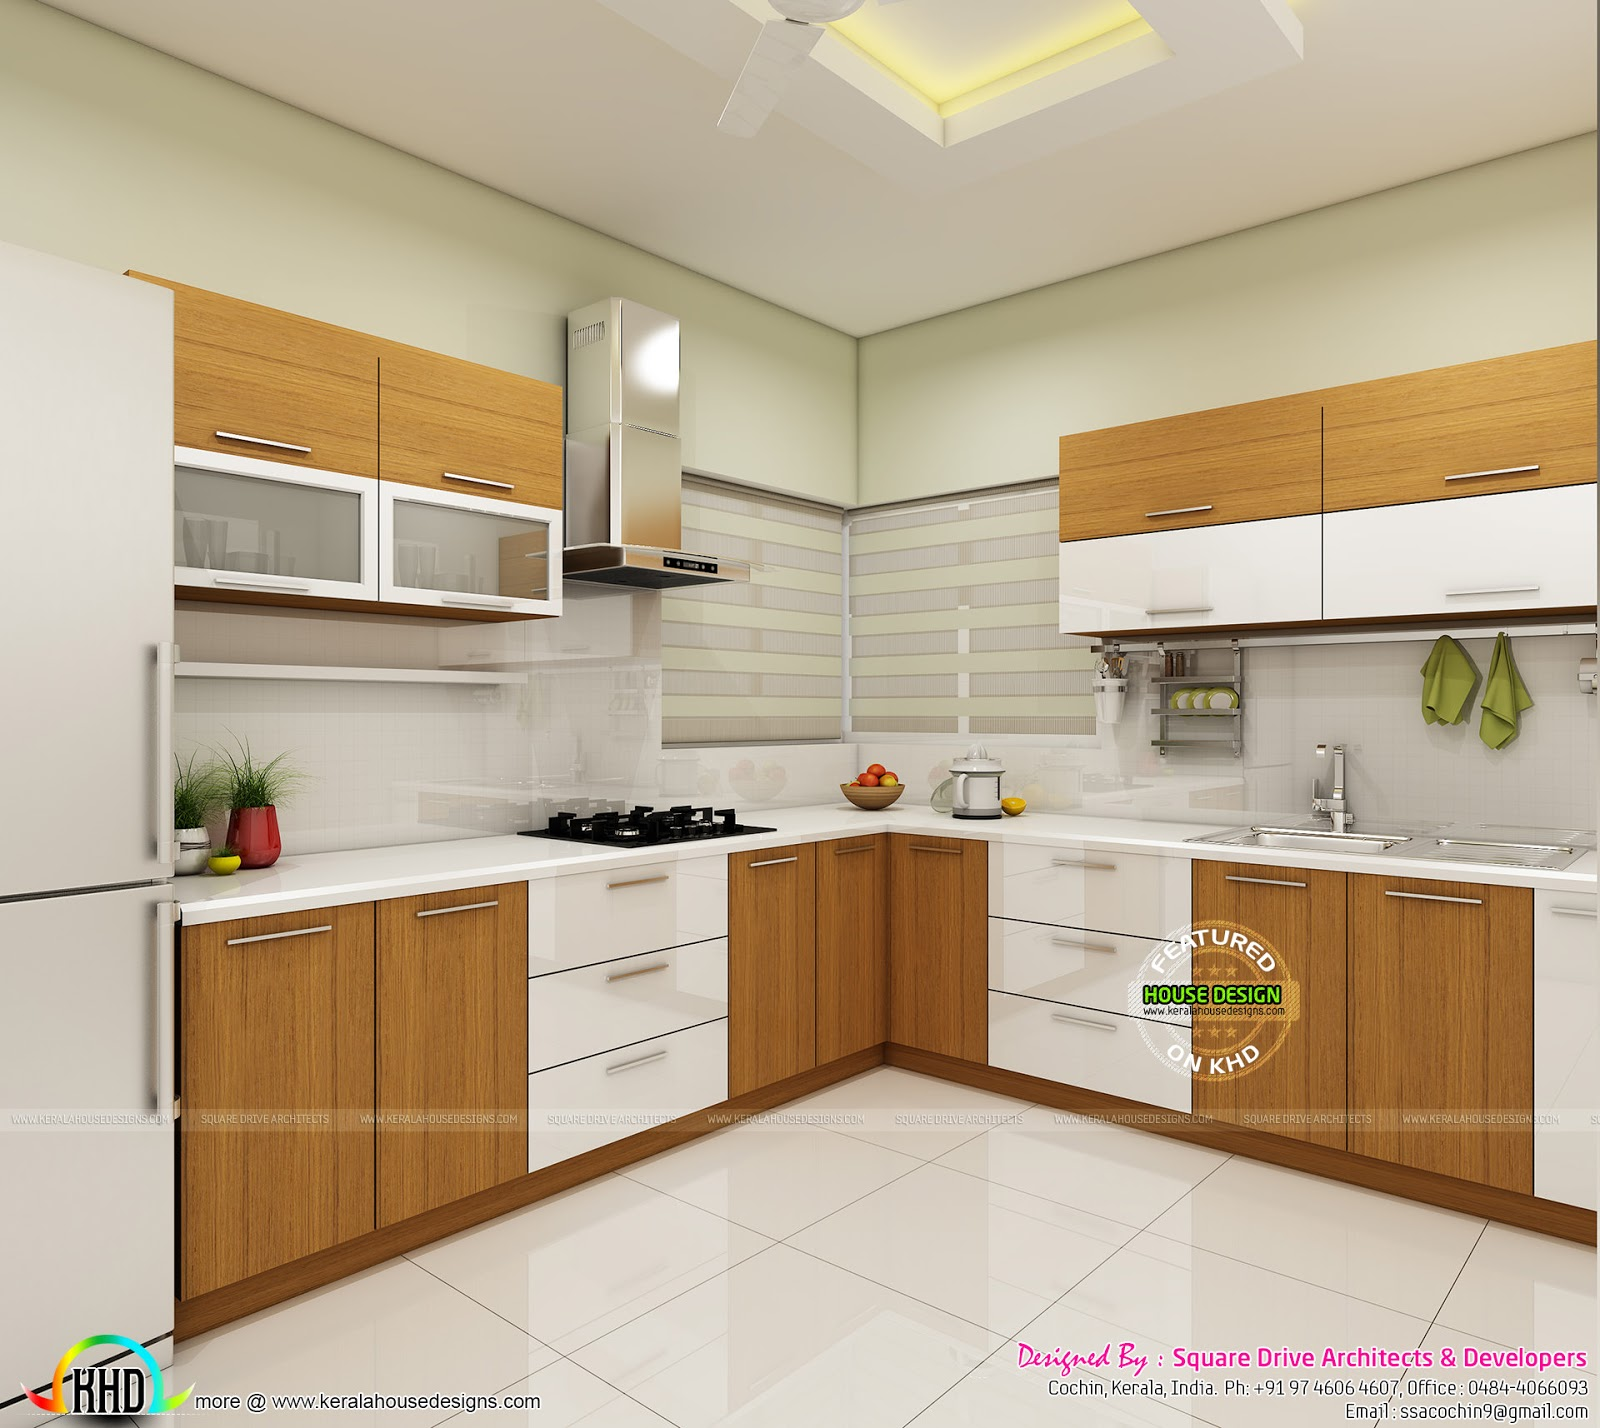 Modern home interiors of bedroom dining kitchen kerala Bedroom with kitchen design